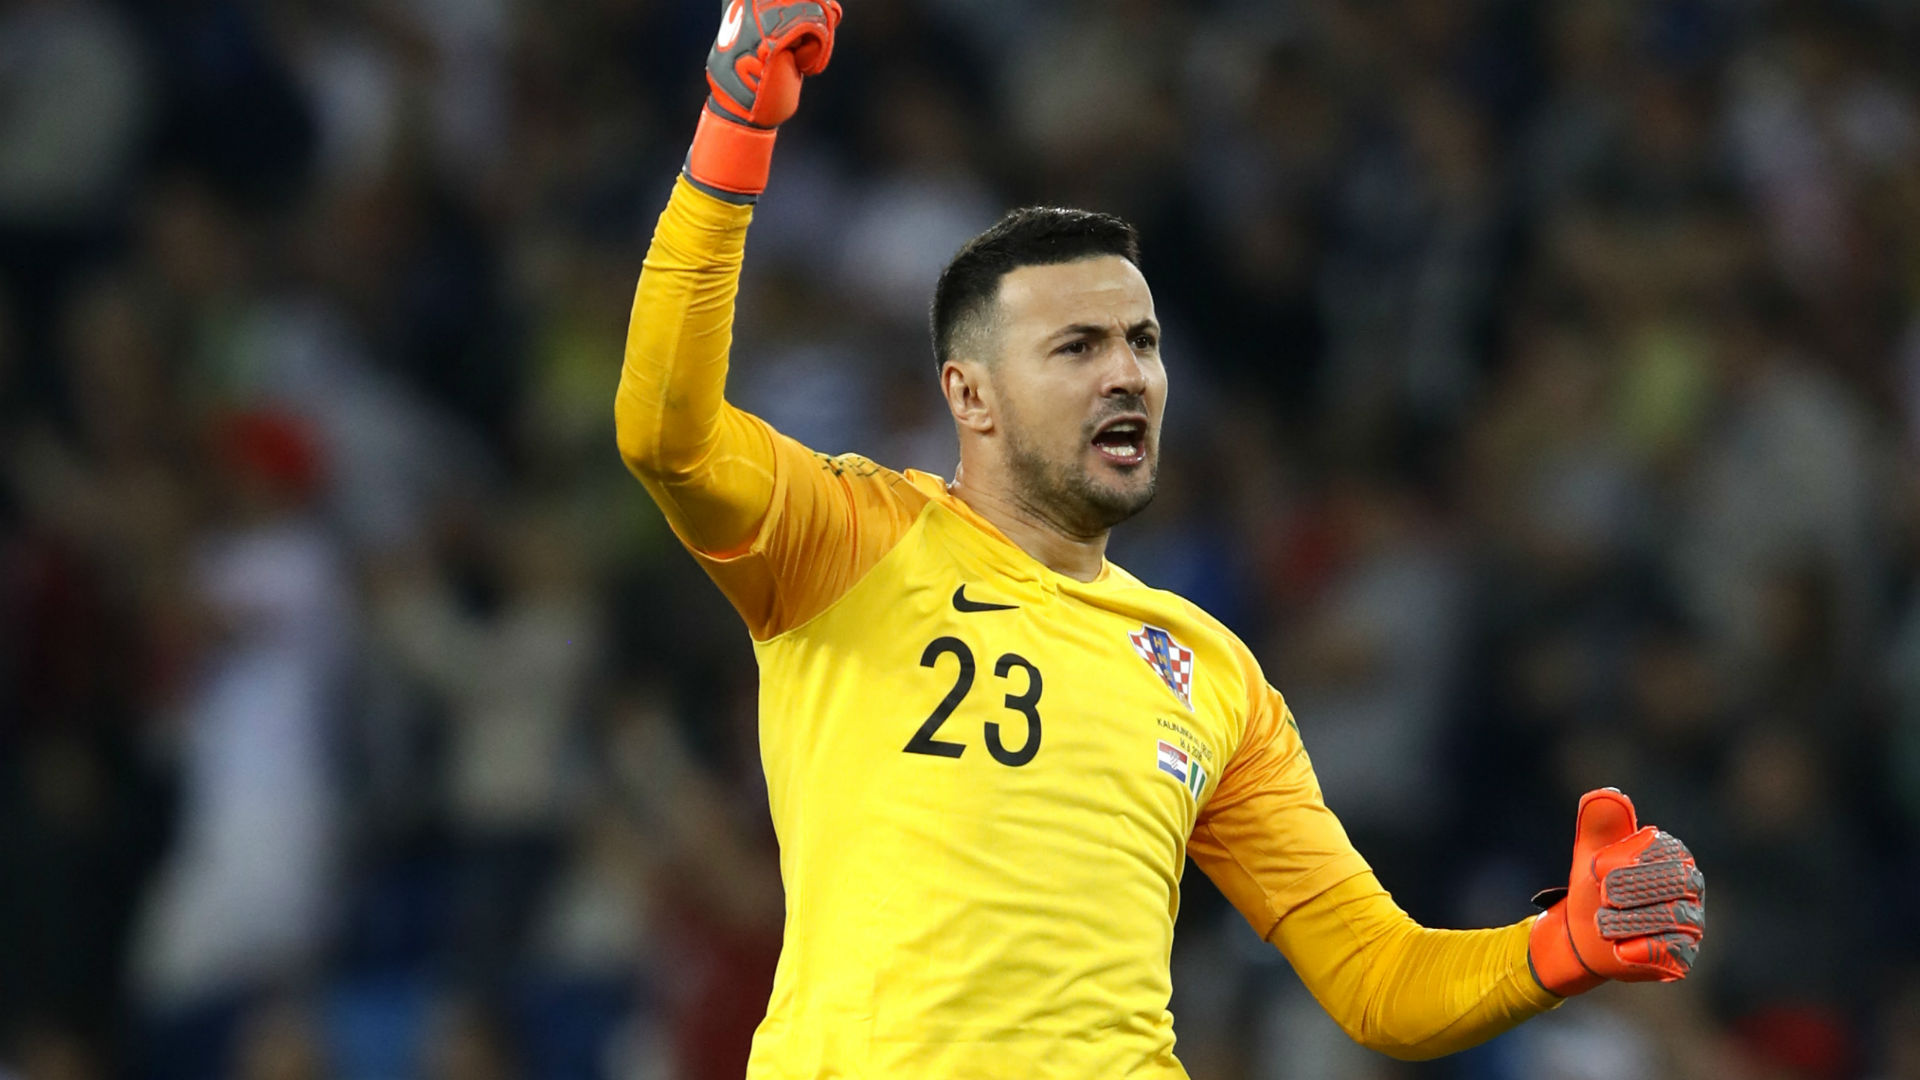 Subasic quitte le club (officiel) — Monaco